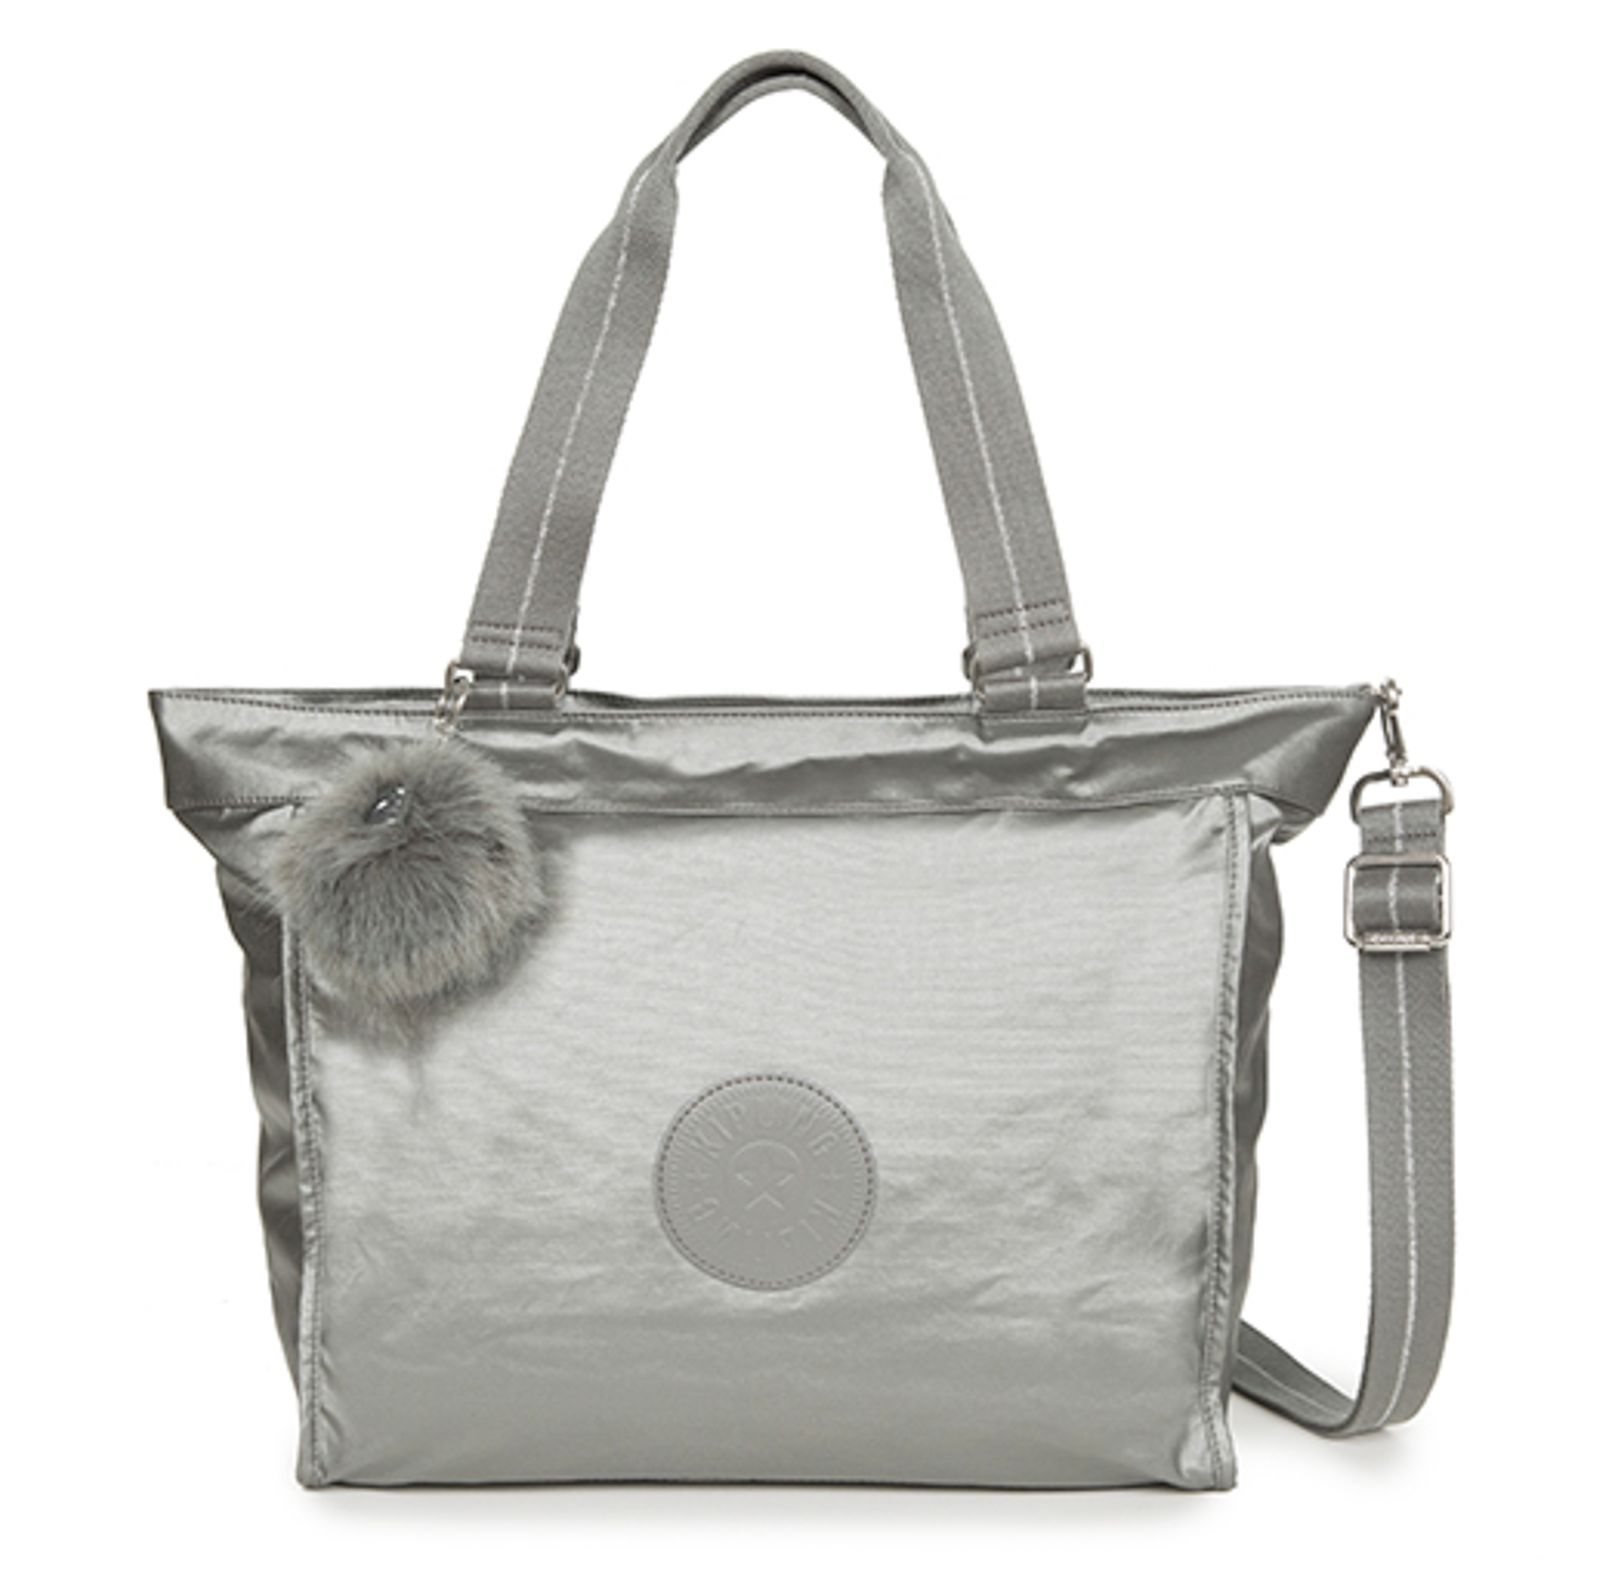 Bag Shopper L Large Metallic Stony Kipling New Tote DbEIHeW9Y2